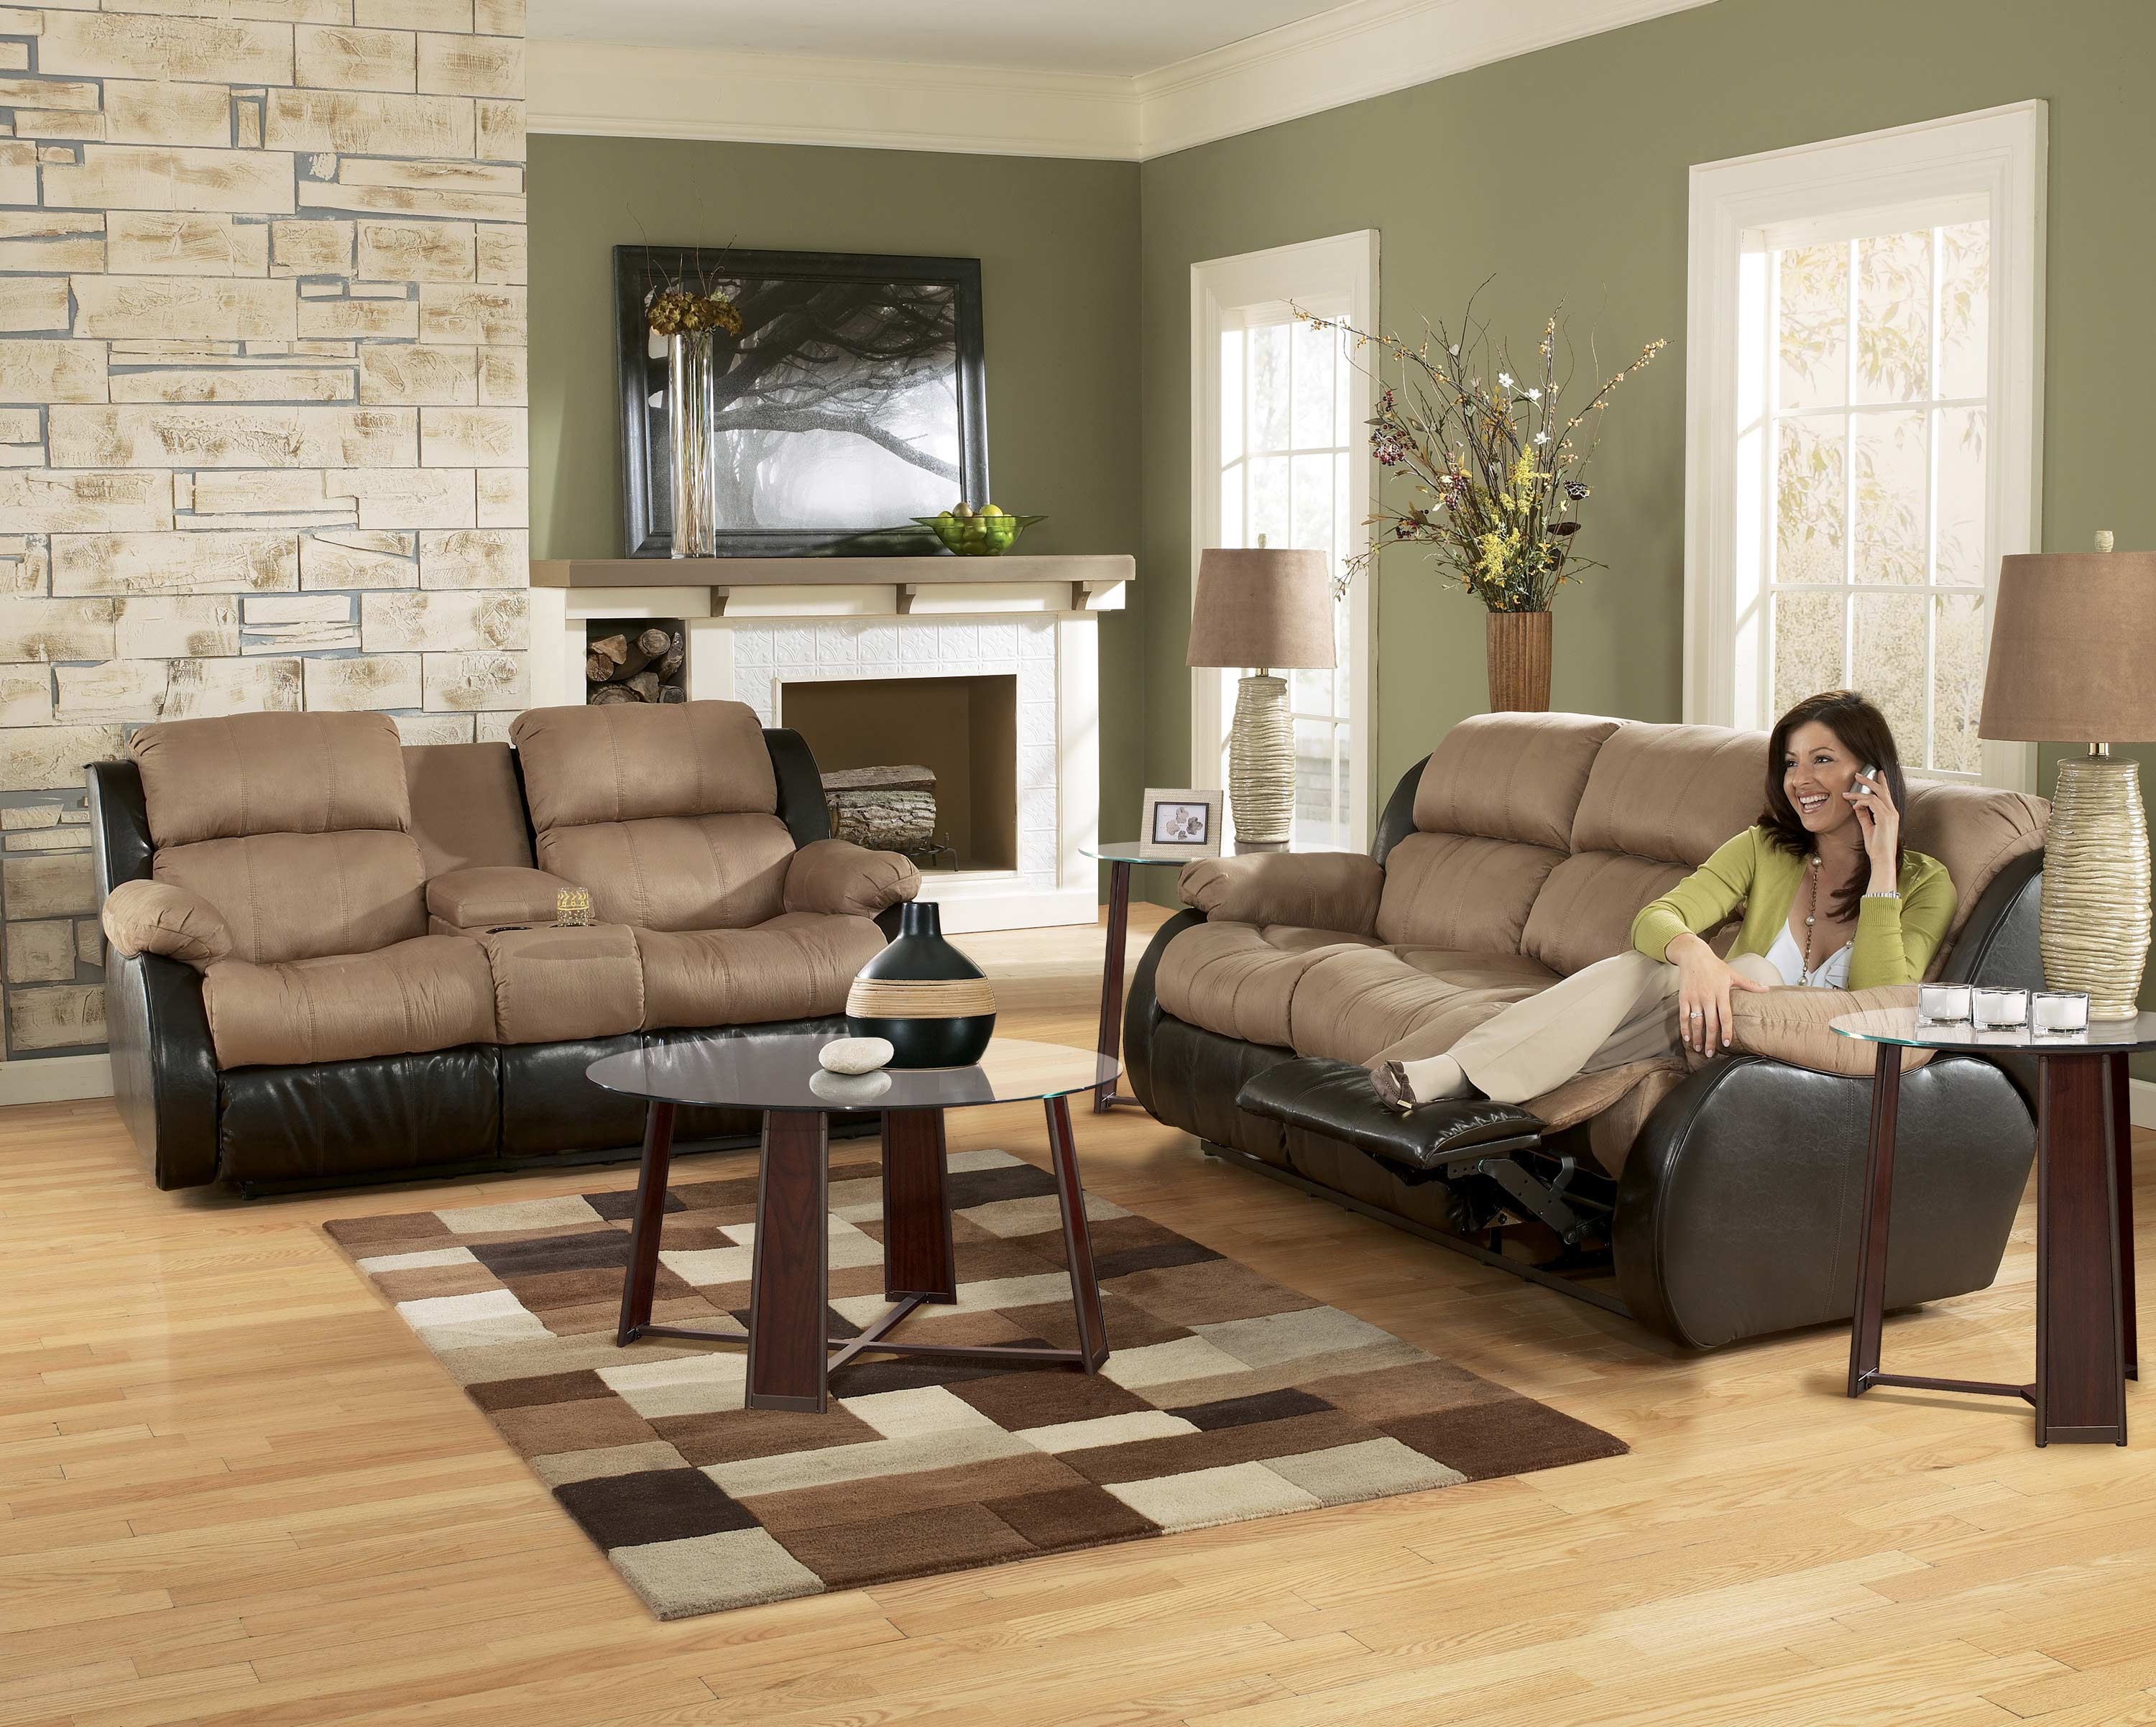 sofas for a small living room rooms to go living room set furnitures roy home design 26164